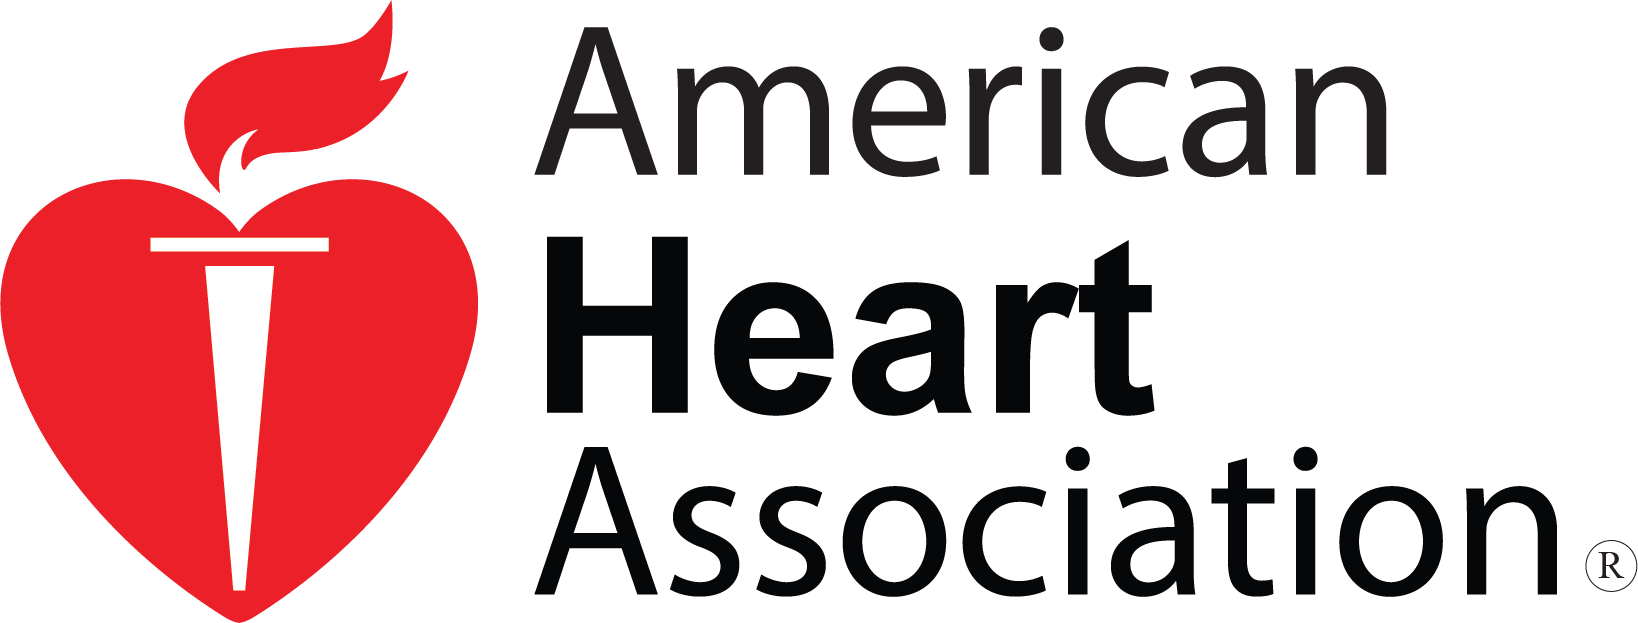 American heart association clipart jpg transparent library 9/9/2017 - AHA BLS for Healthcare Providers Class • On-Target ... jpg transparent library